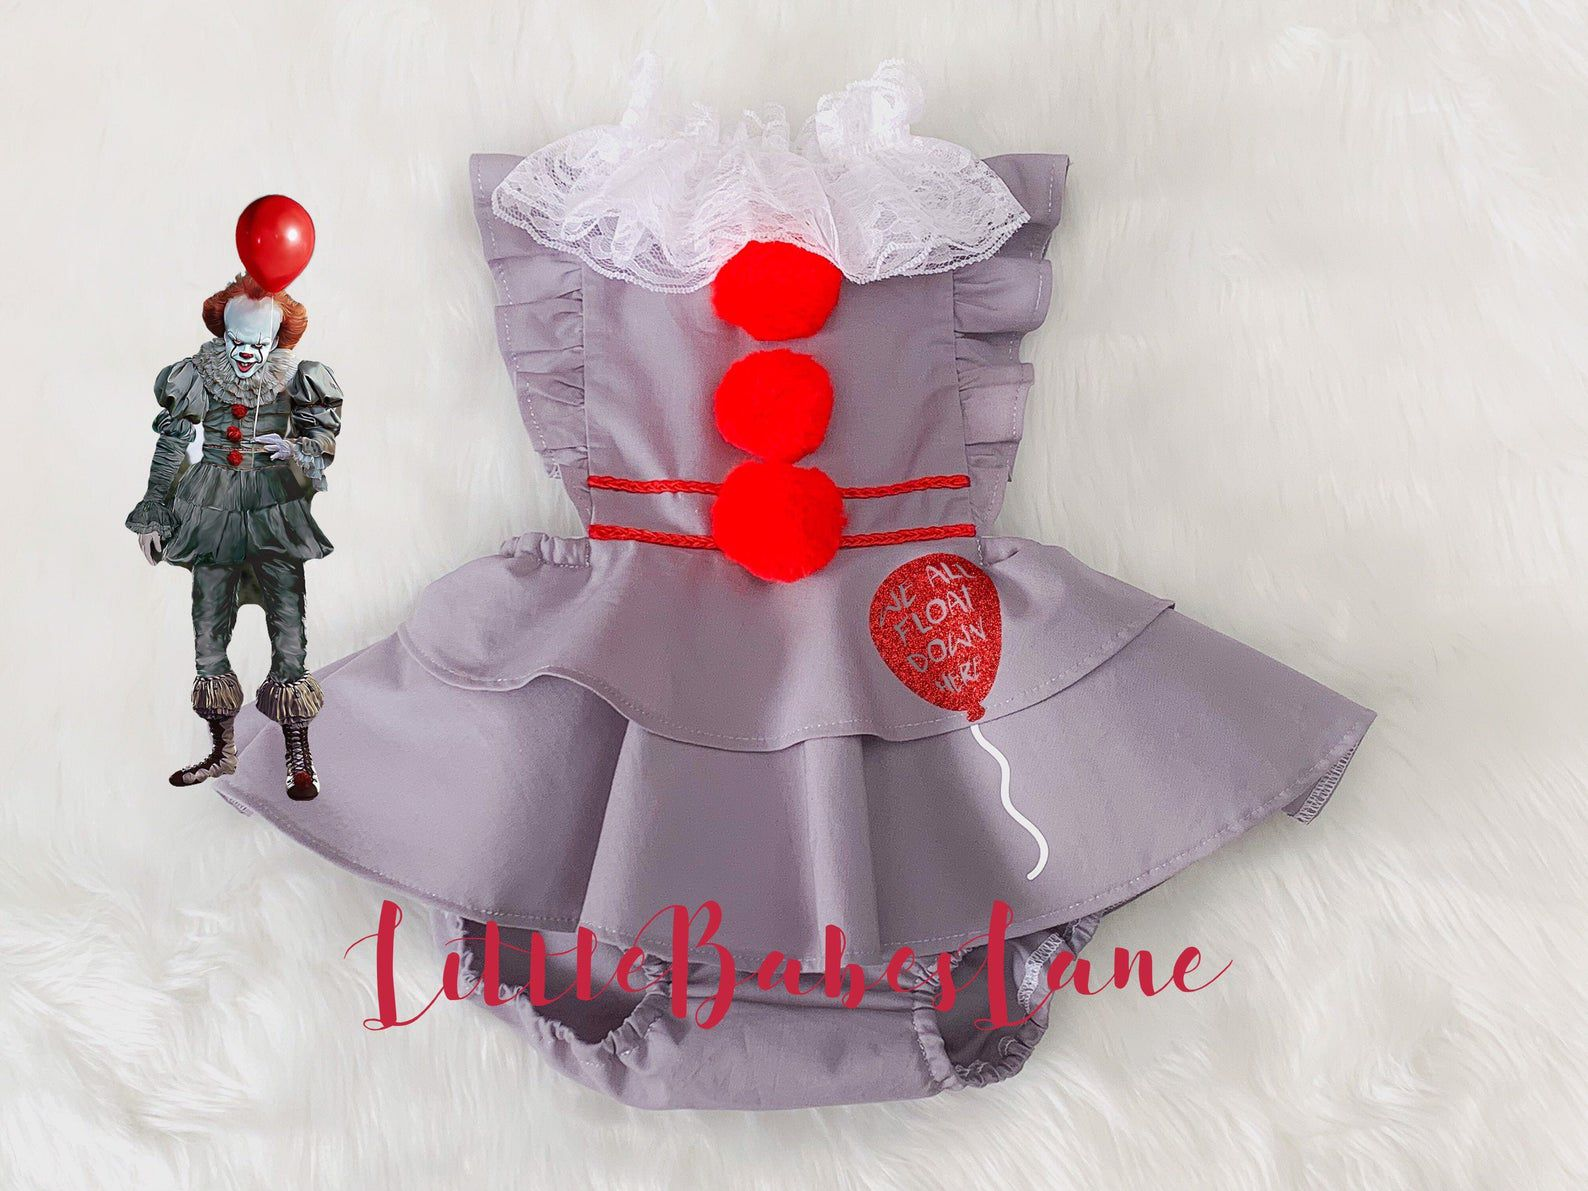 Image of Pennywise baby costume.